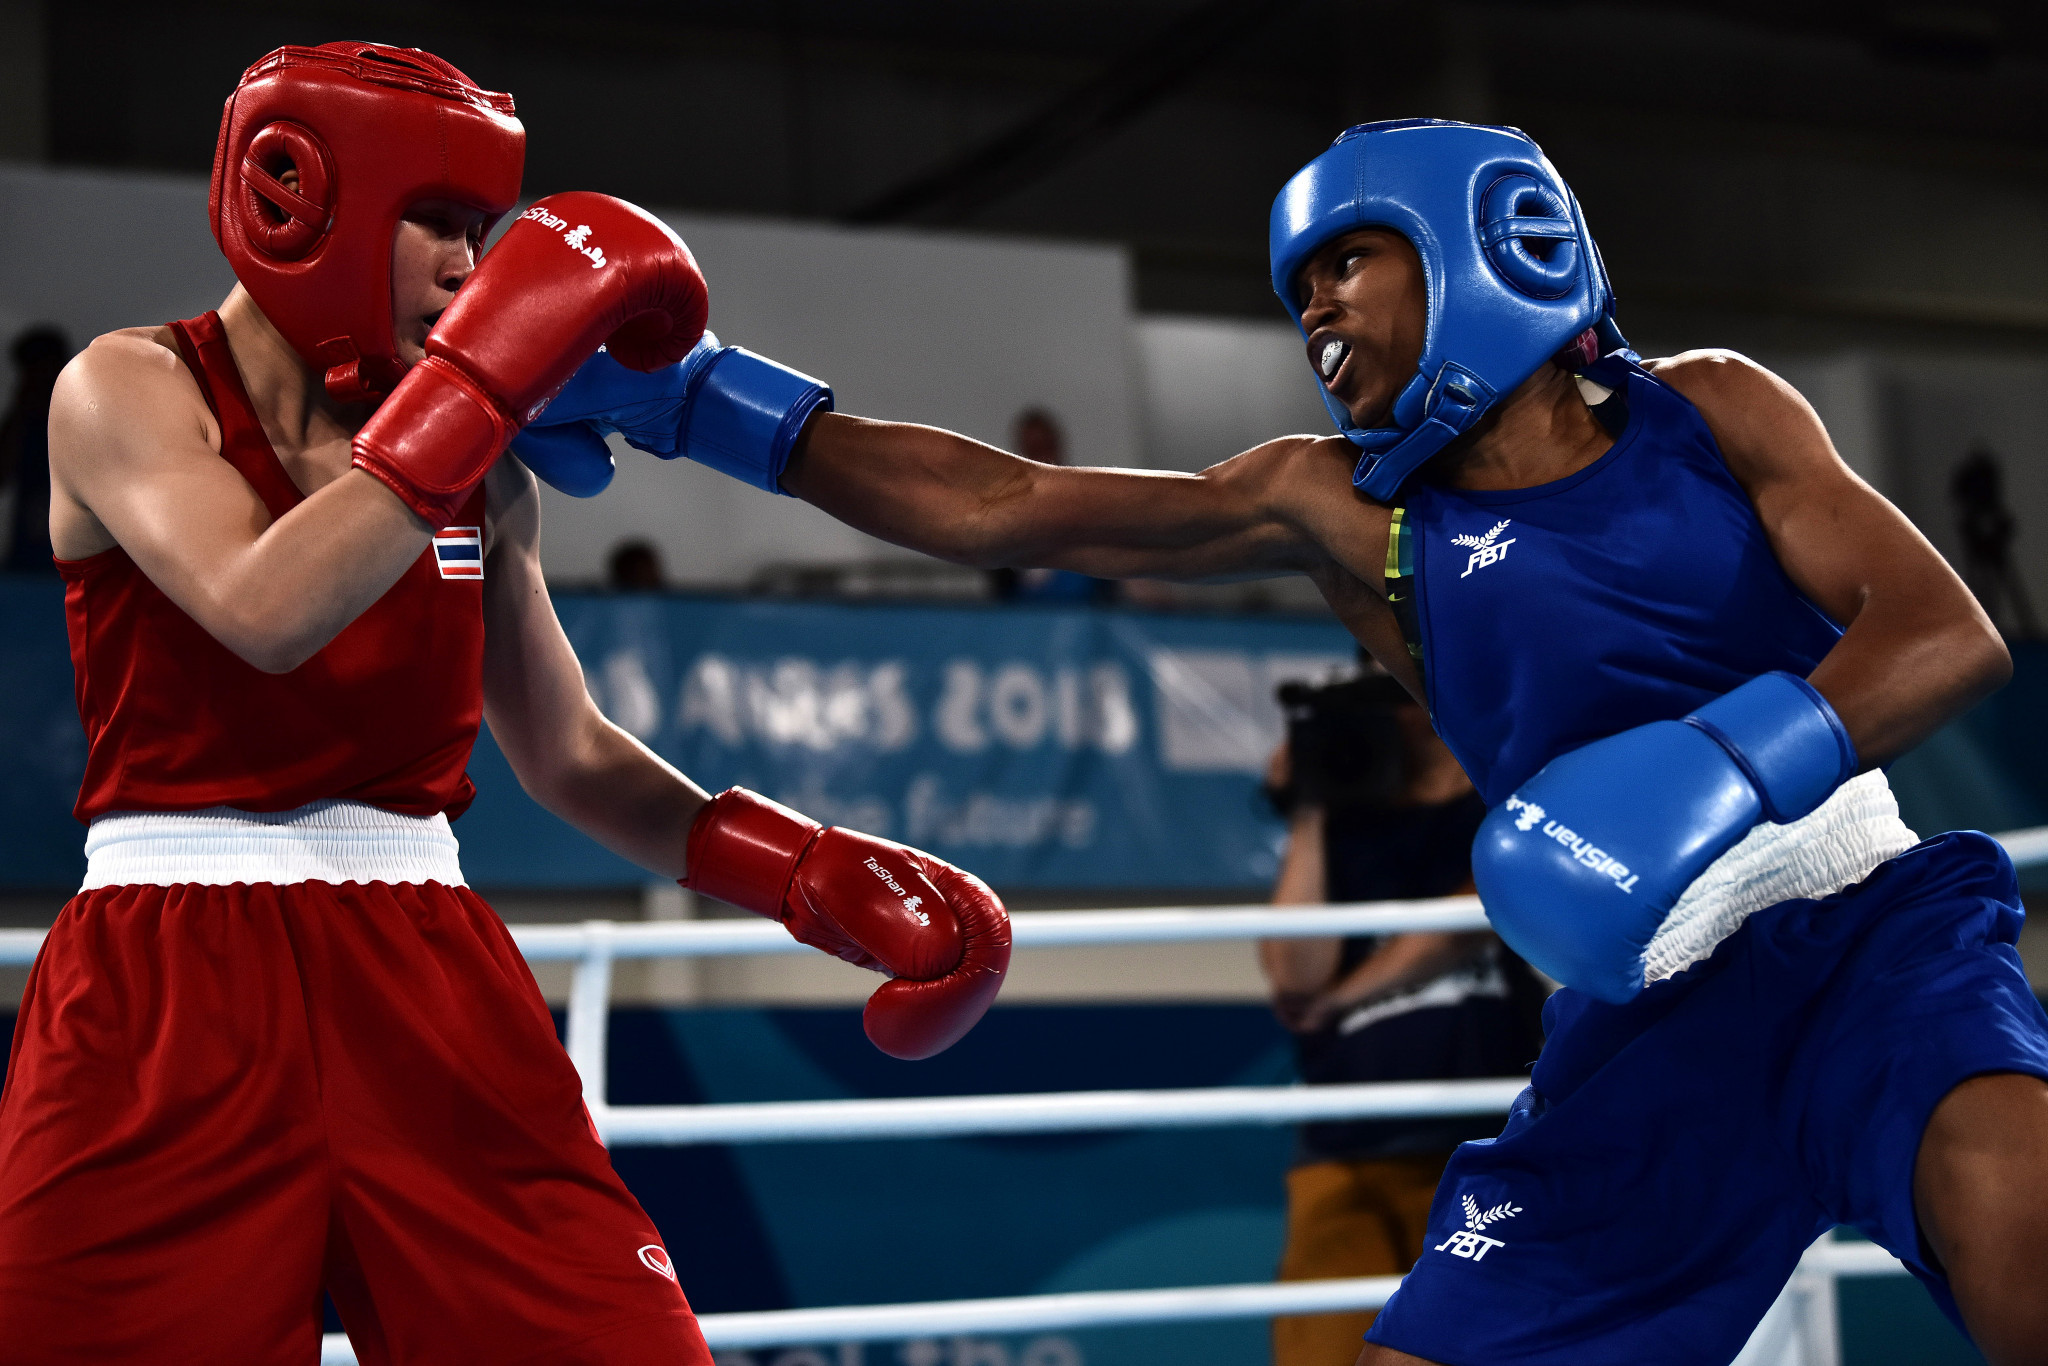 A full report on the refereeing and judging of the boxing event at Buenos Aires 2018 will be given to the IOC ©Getty Images